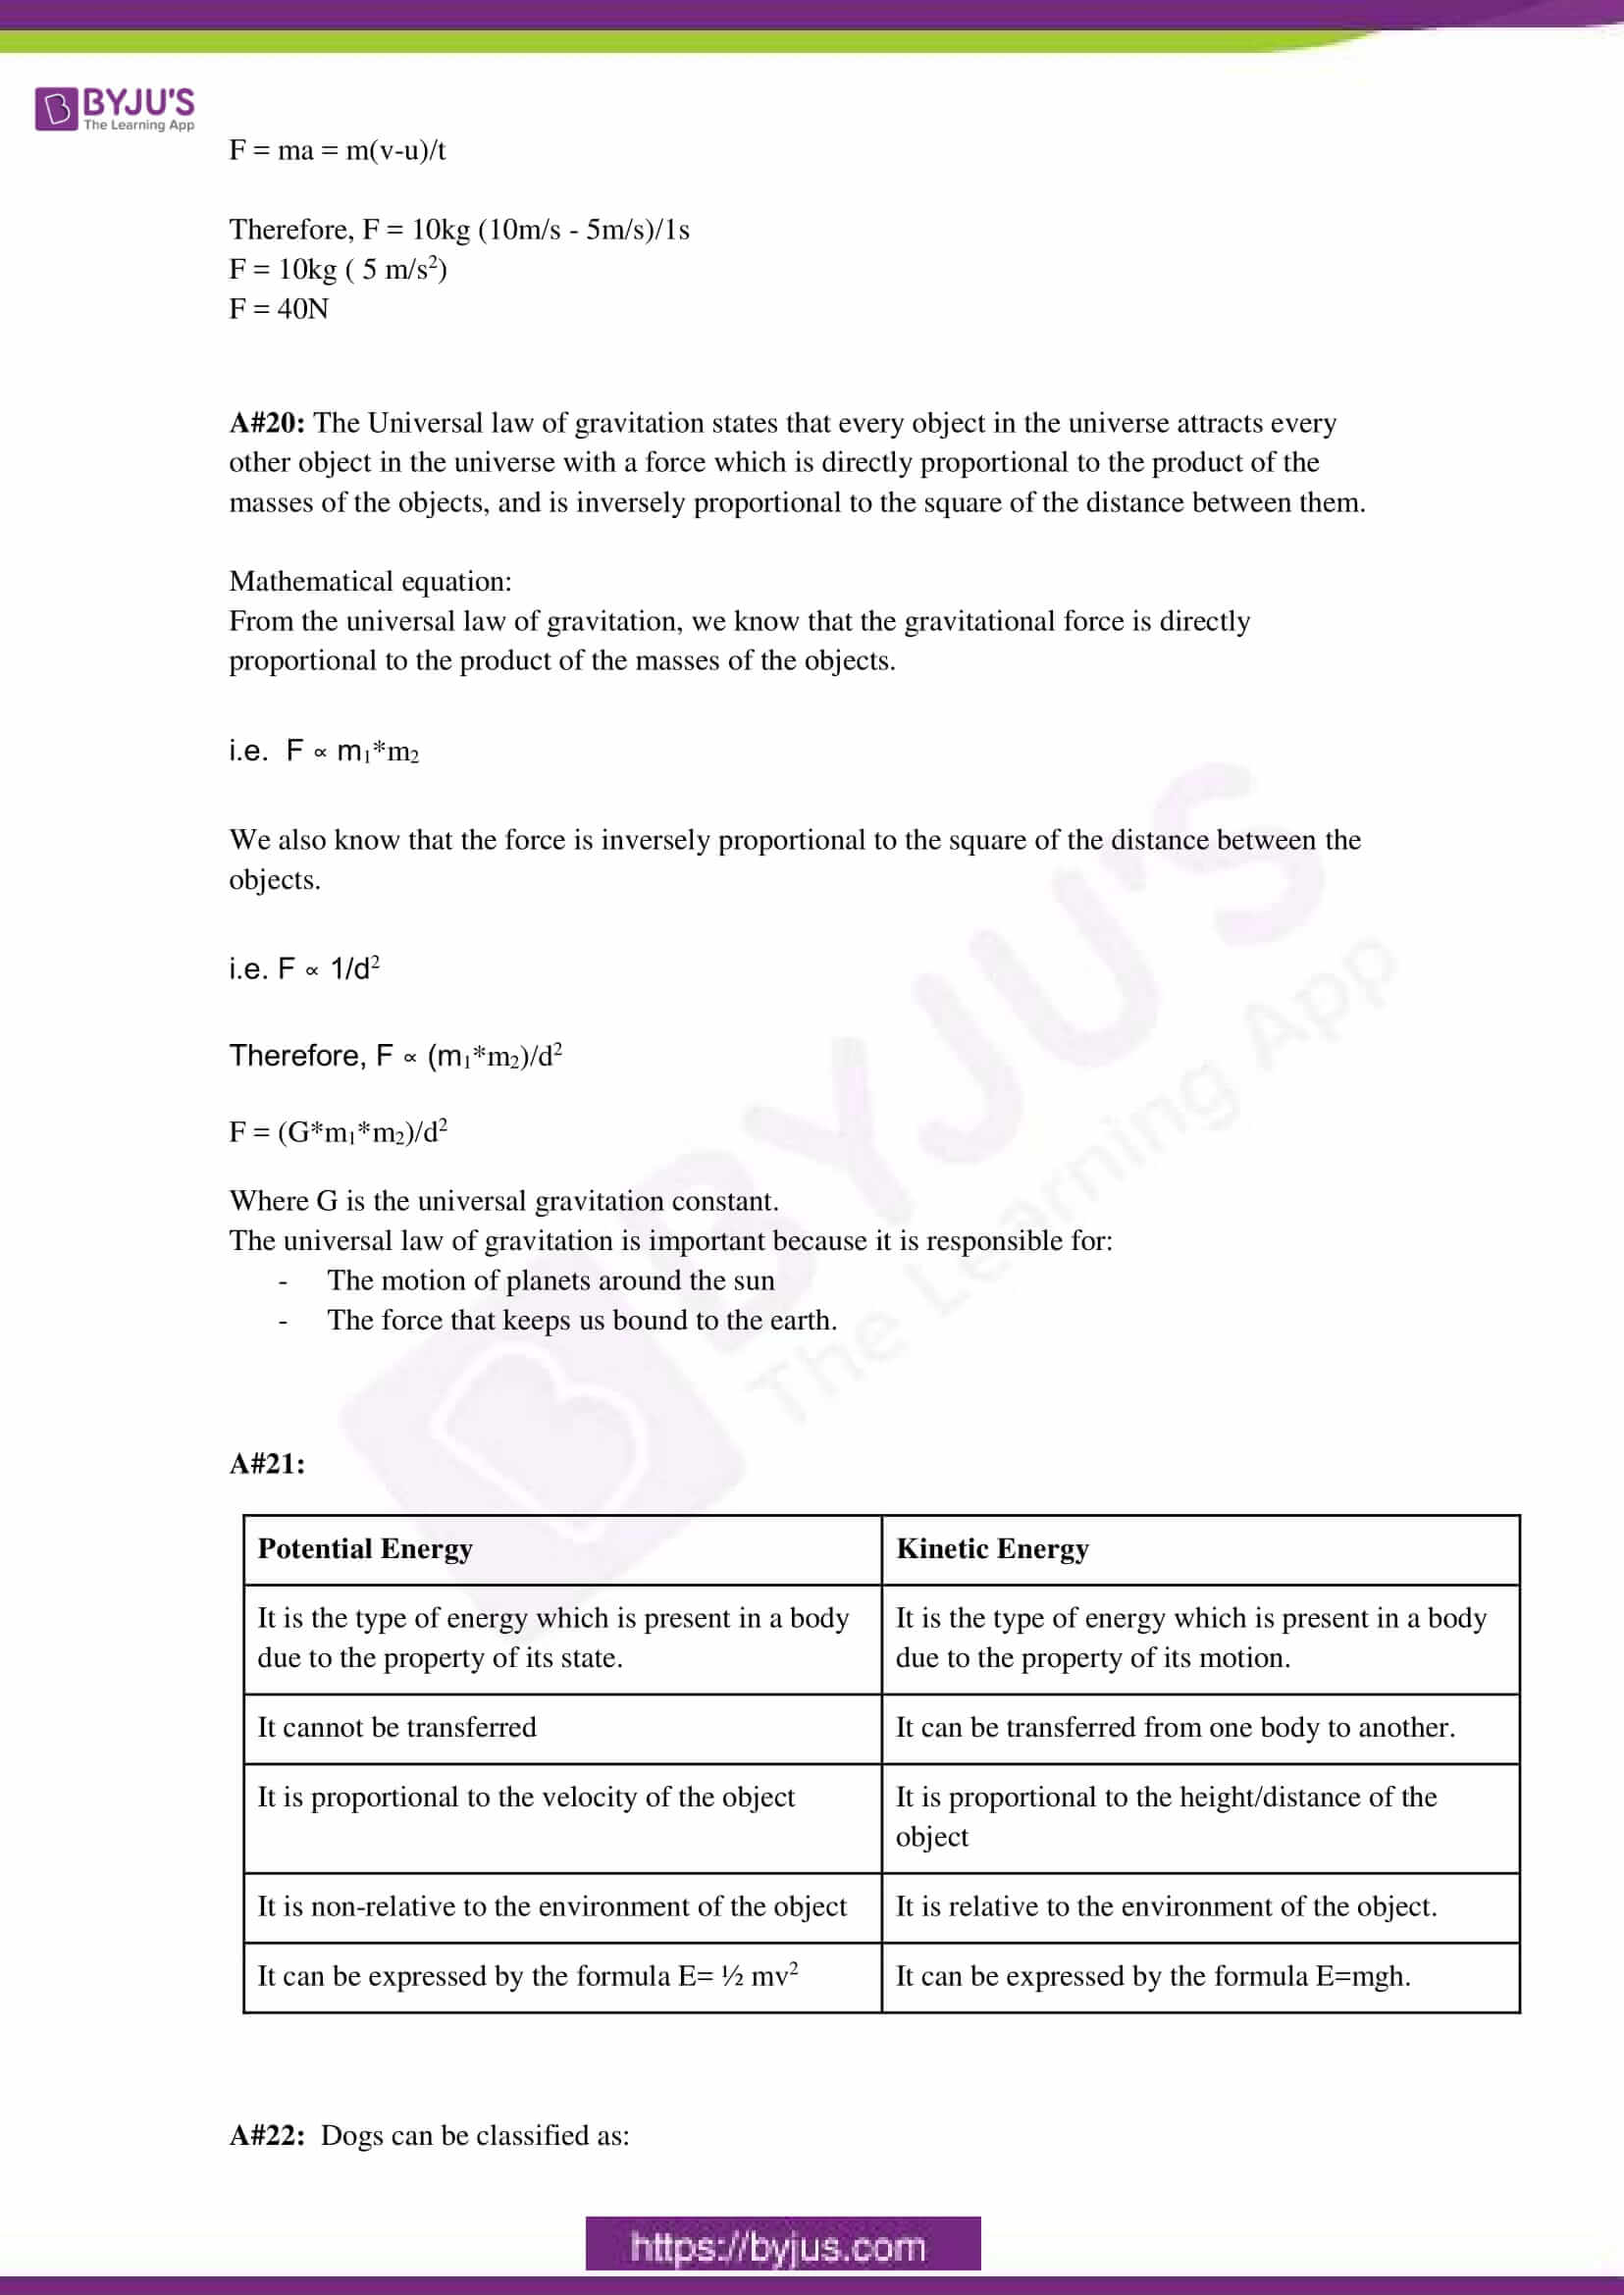 cbse sample paper class 9 science set 3 solution